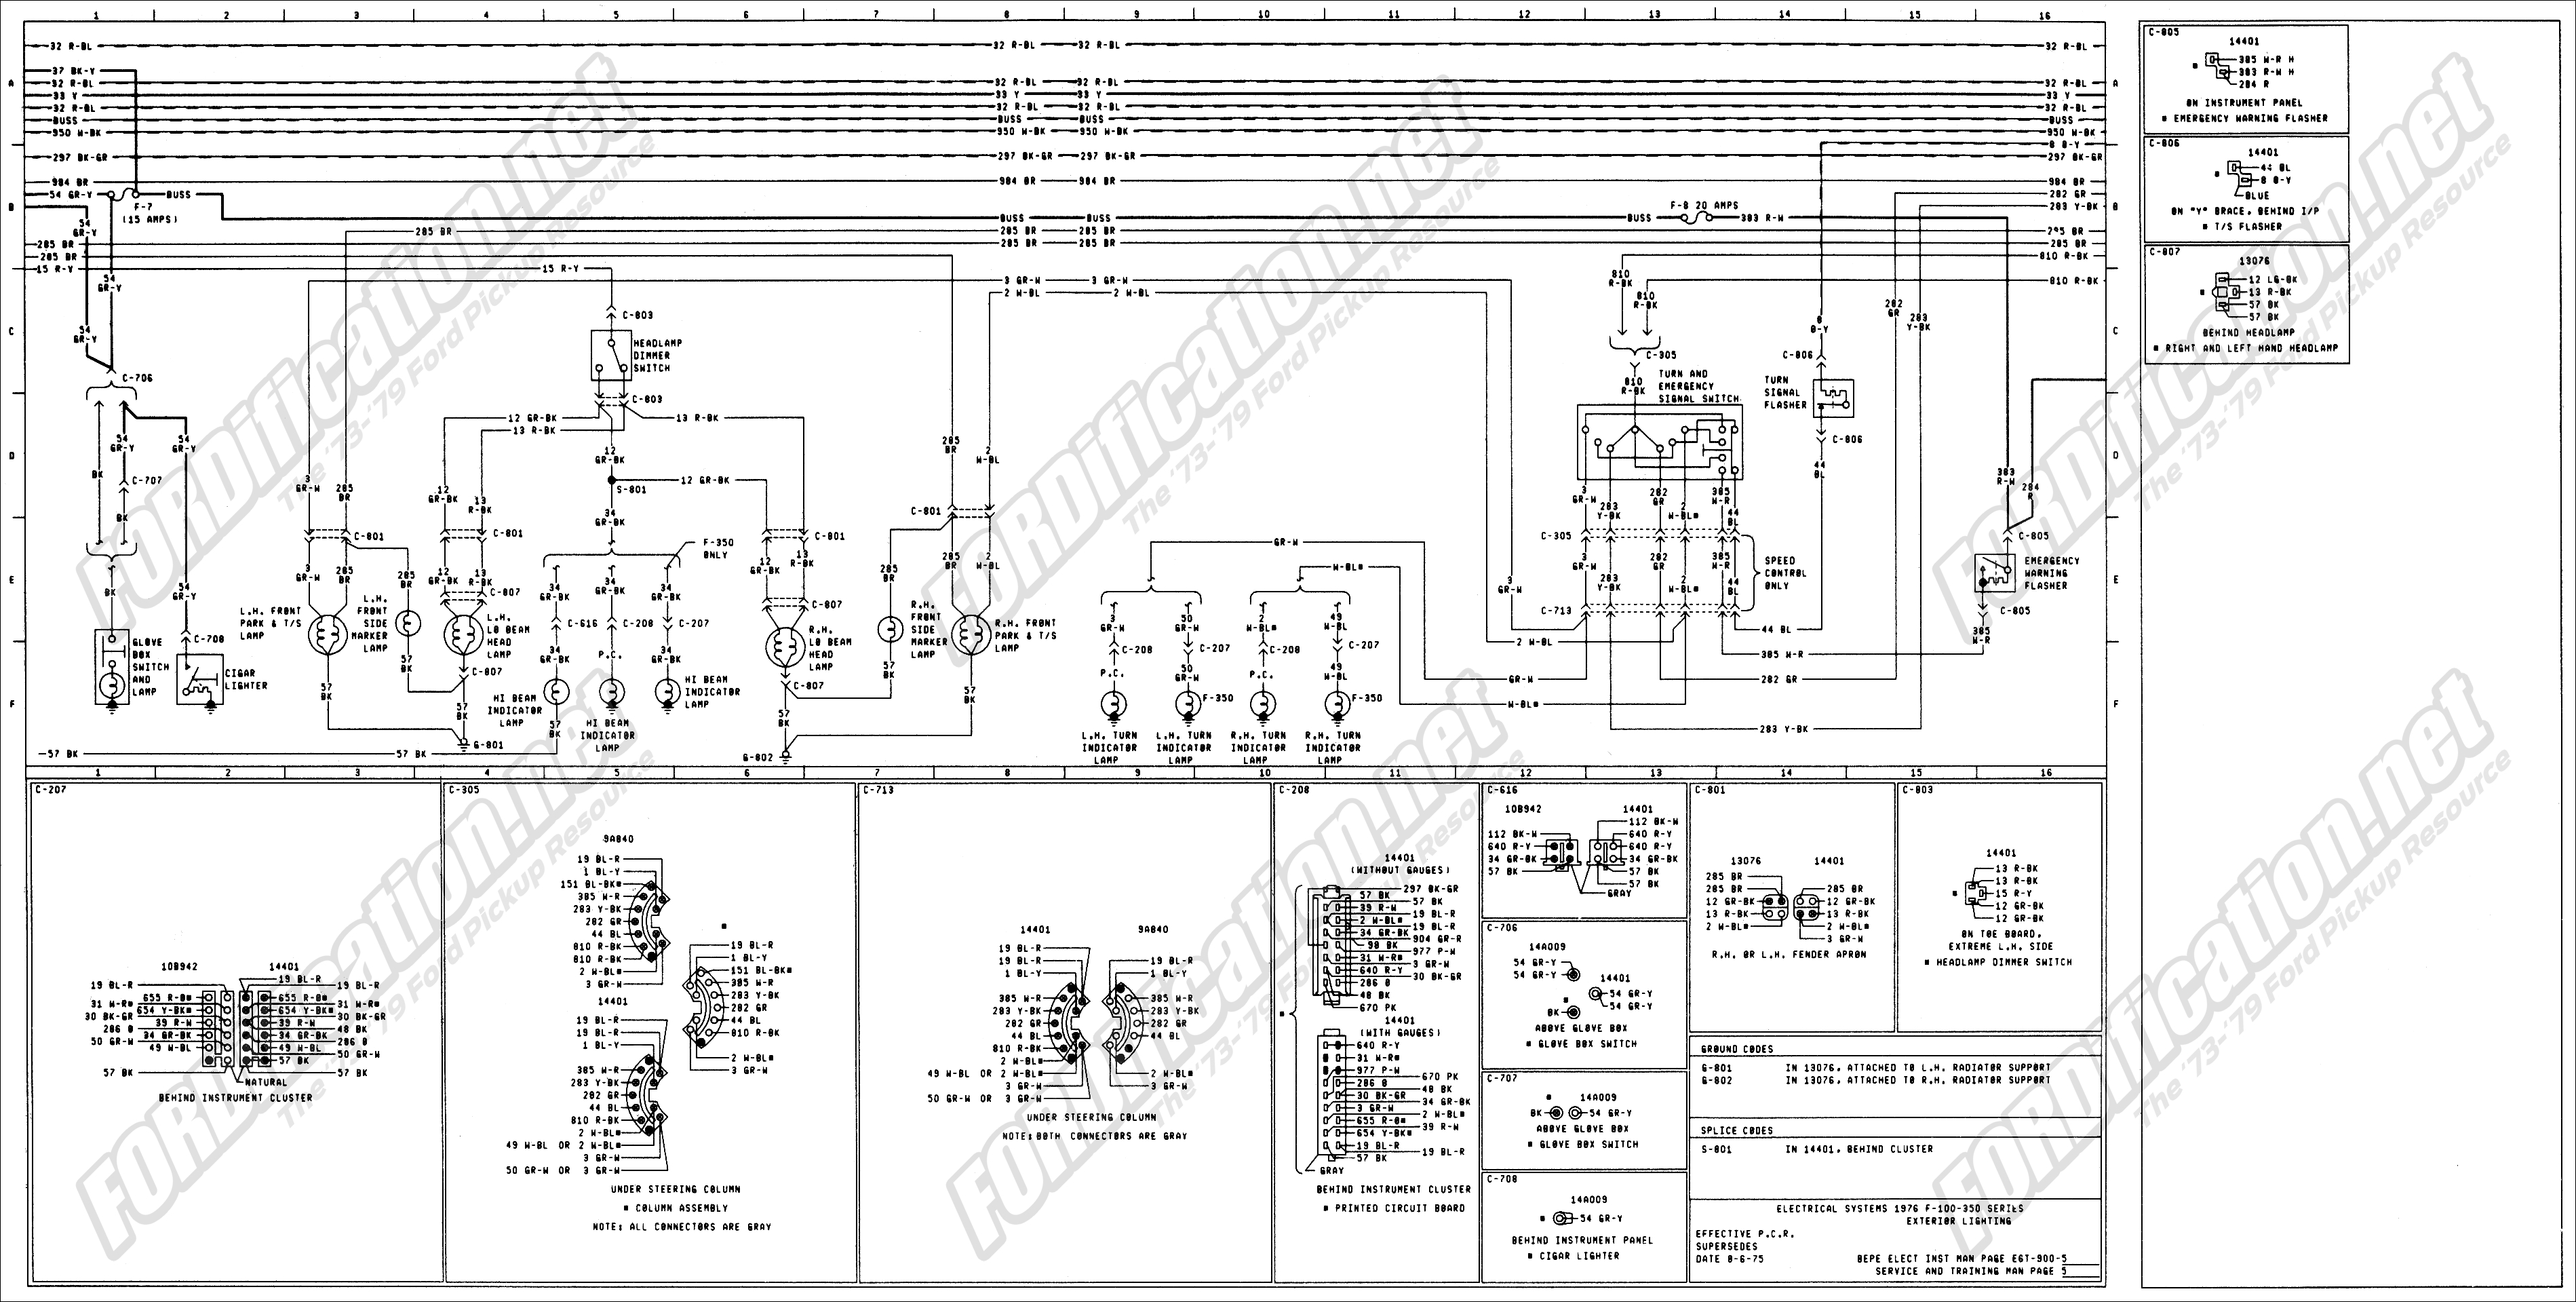 Wiring Diagram Ford F150 Trailer Lights Truck | Manual E-Books - 2017 Ford F 150 Trailer Wiring Diagram